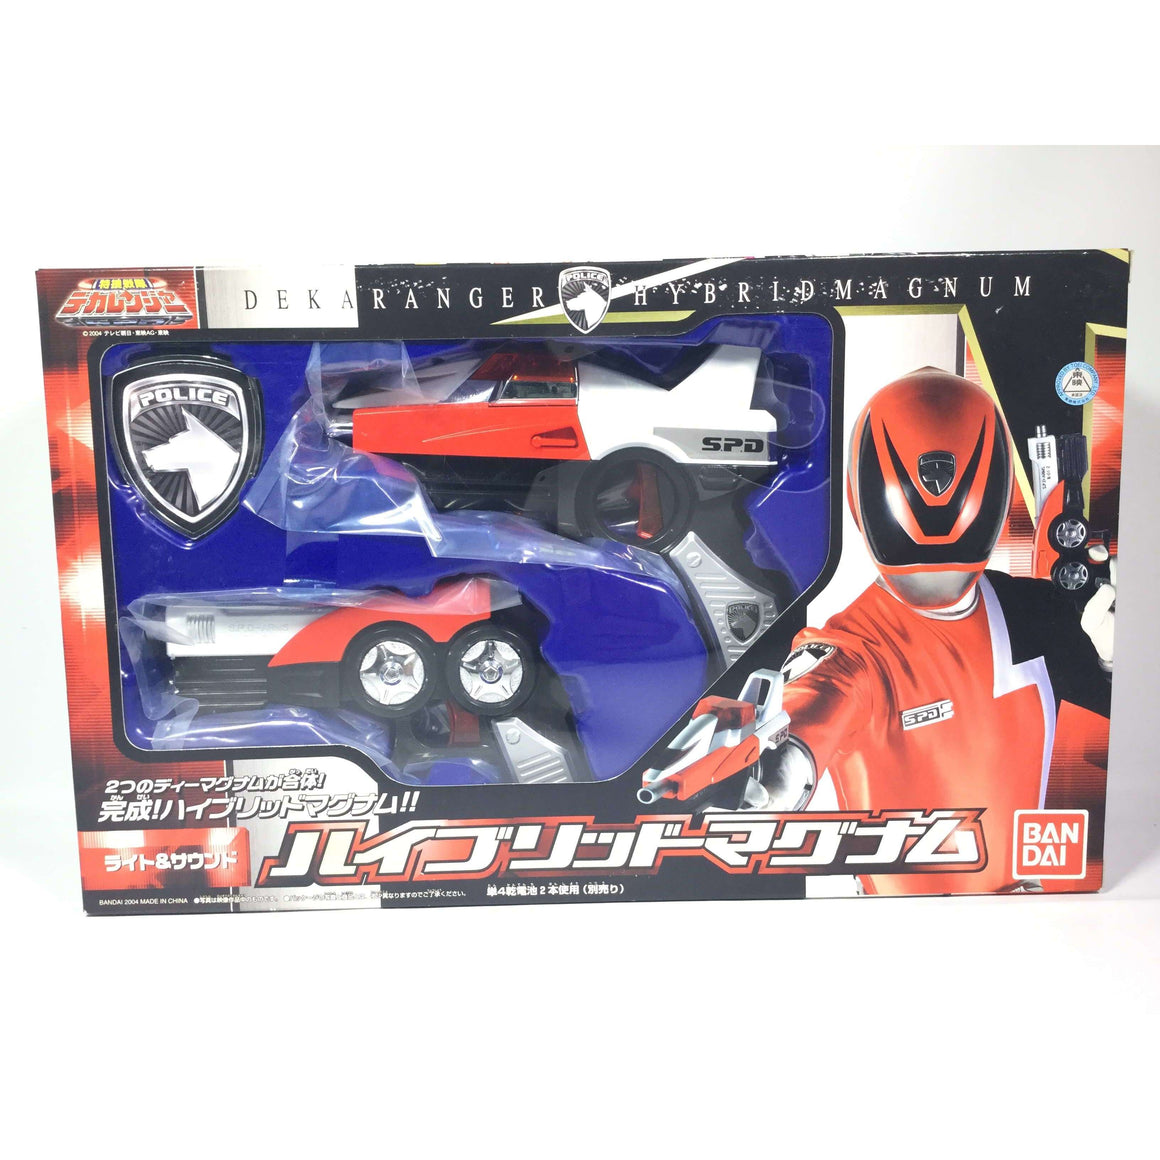 CSTOYS INTERNATIONAL:[BOXED] Tokusou Sentai Dekaranger: DX Hybrid Magnum Set